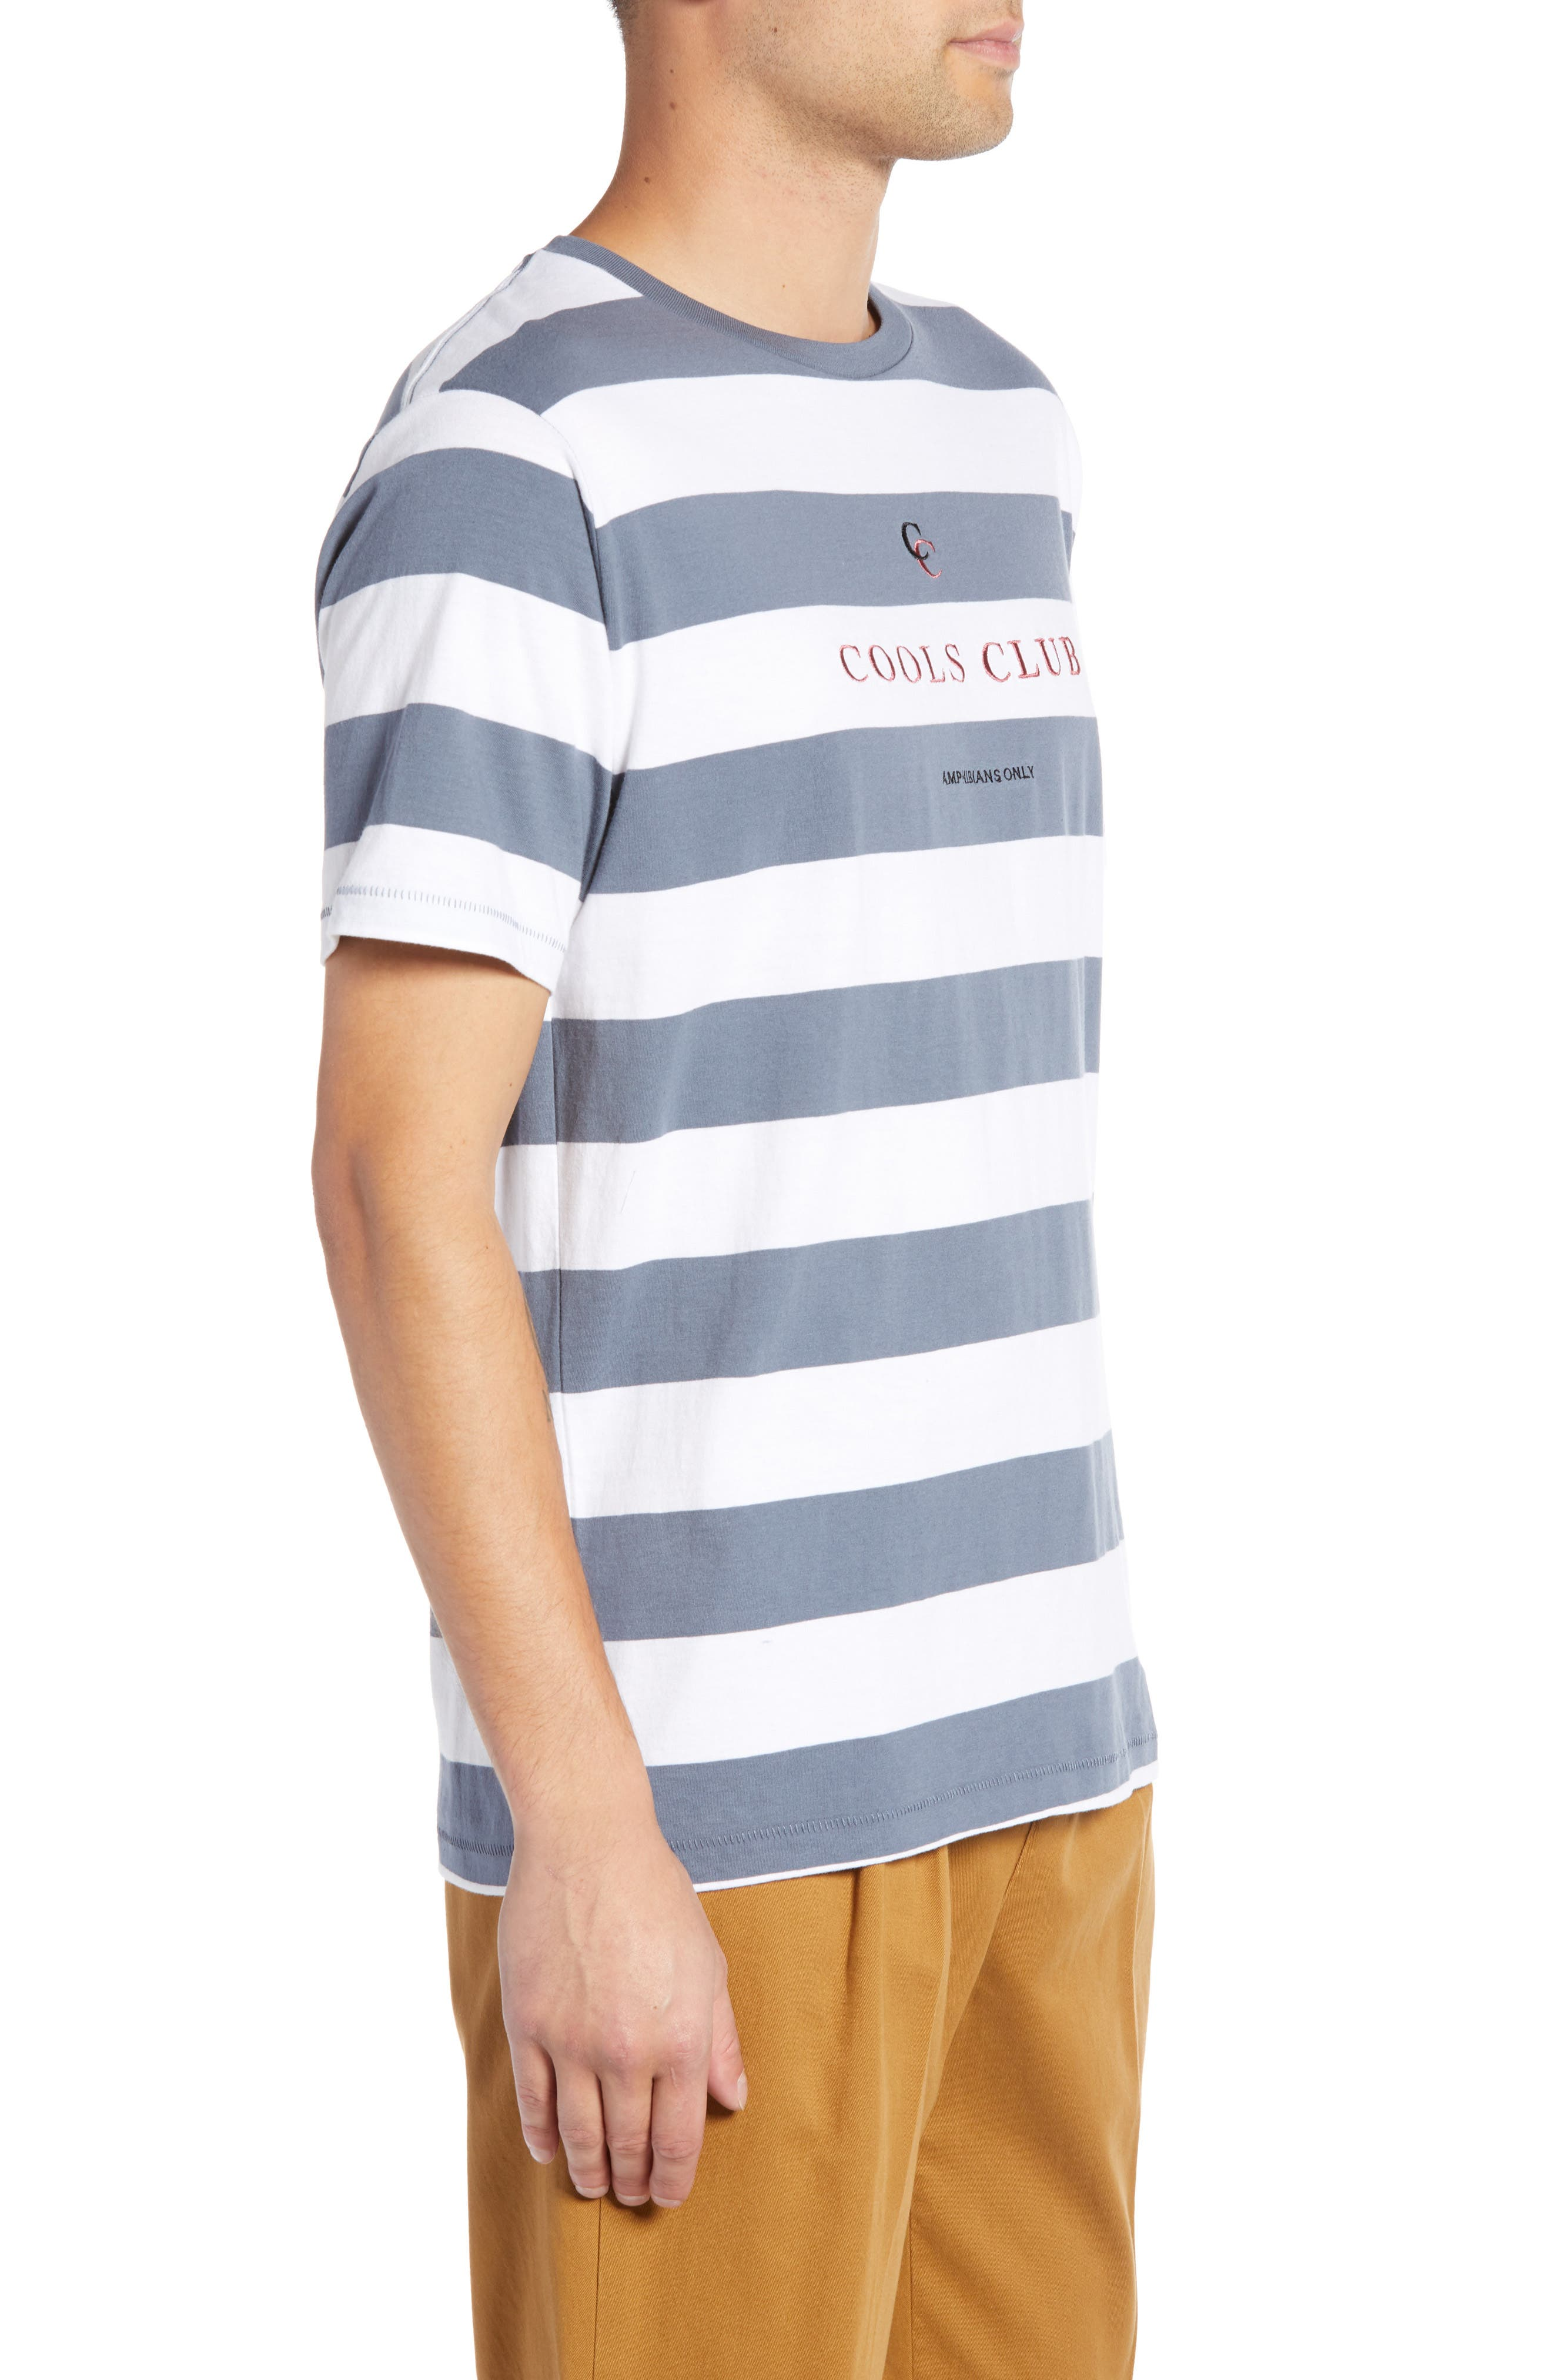 Embroidered Cools Club Stripe T-Shirt,                             Alternate thumbnail 3, color,                             NAVY STRIPE